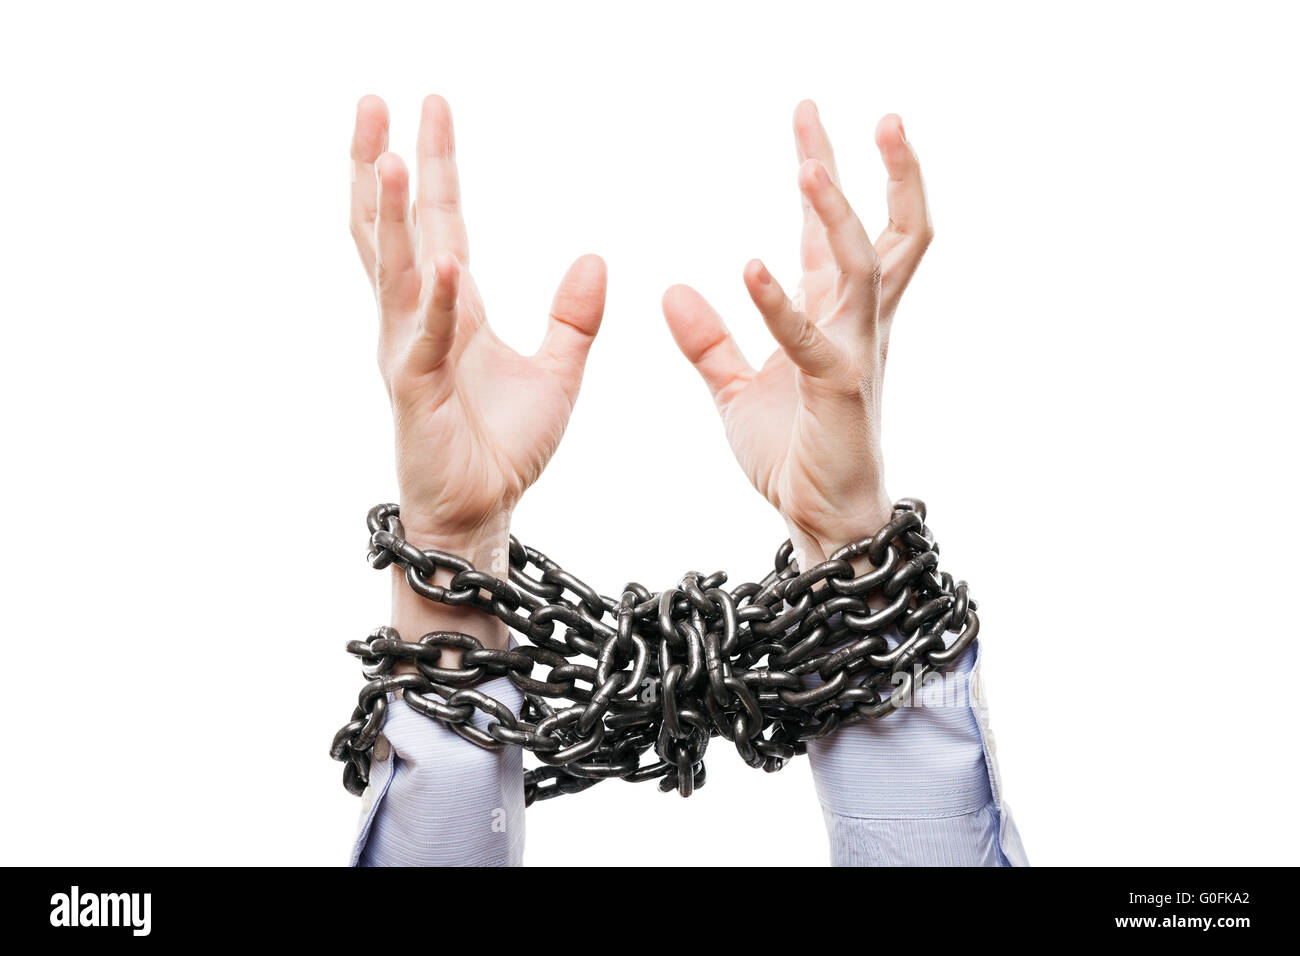 Businessman metal chain tied hands raised for help - Stock Image